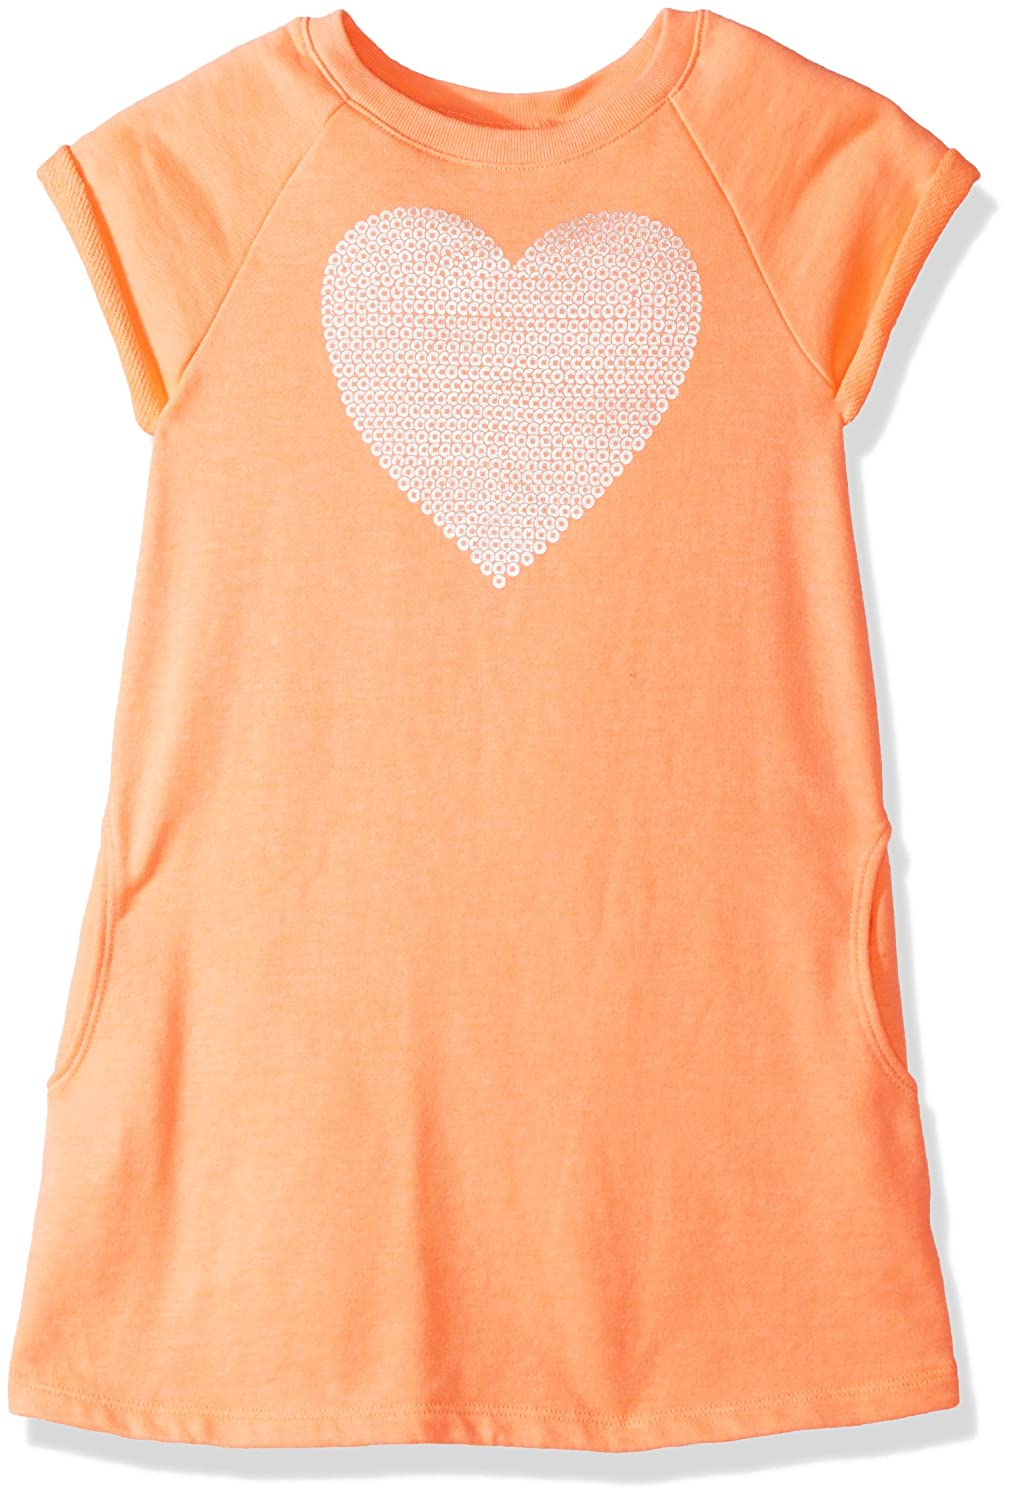 4T Crazy 8 Toddler Girls Casual Dress with Red Hearts sizes 2T